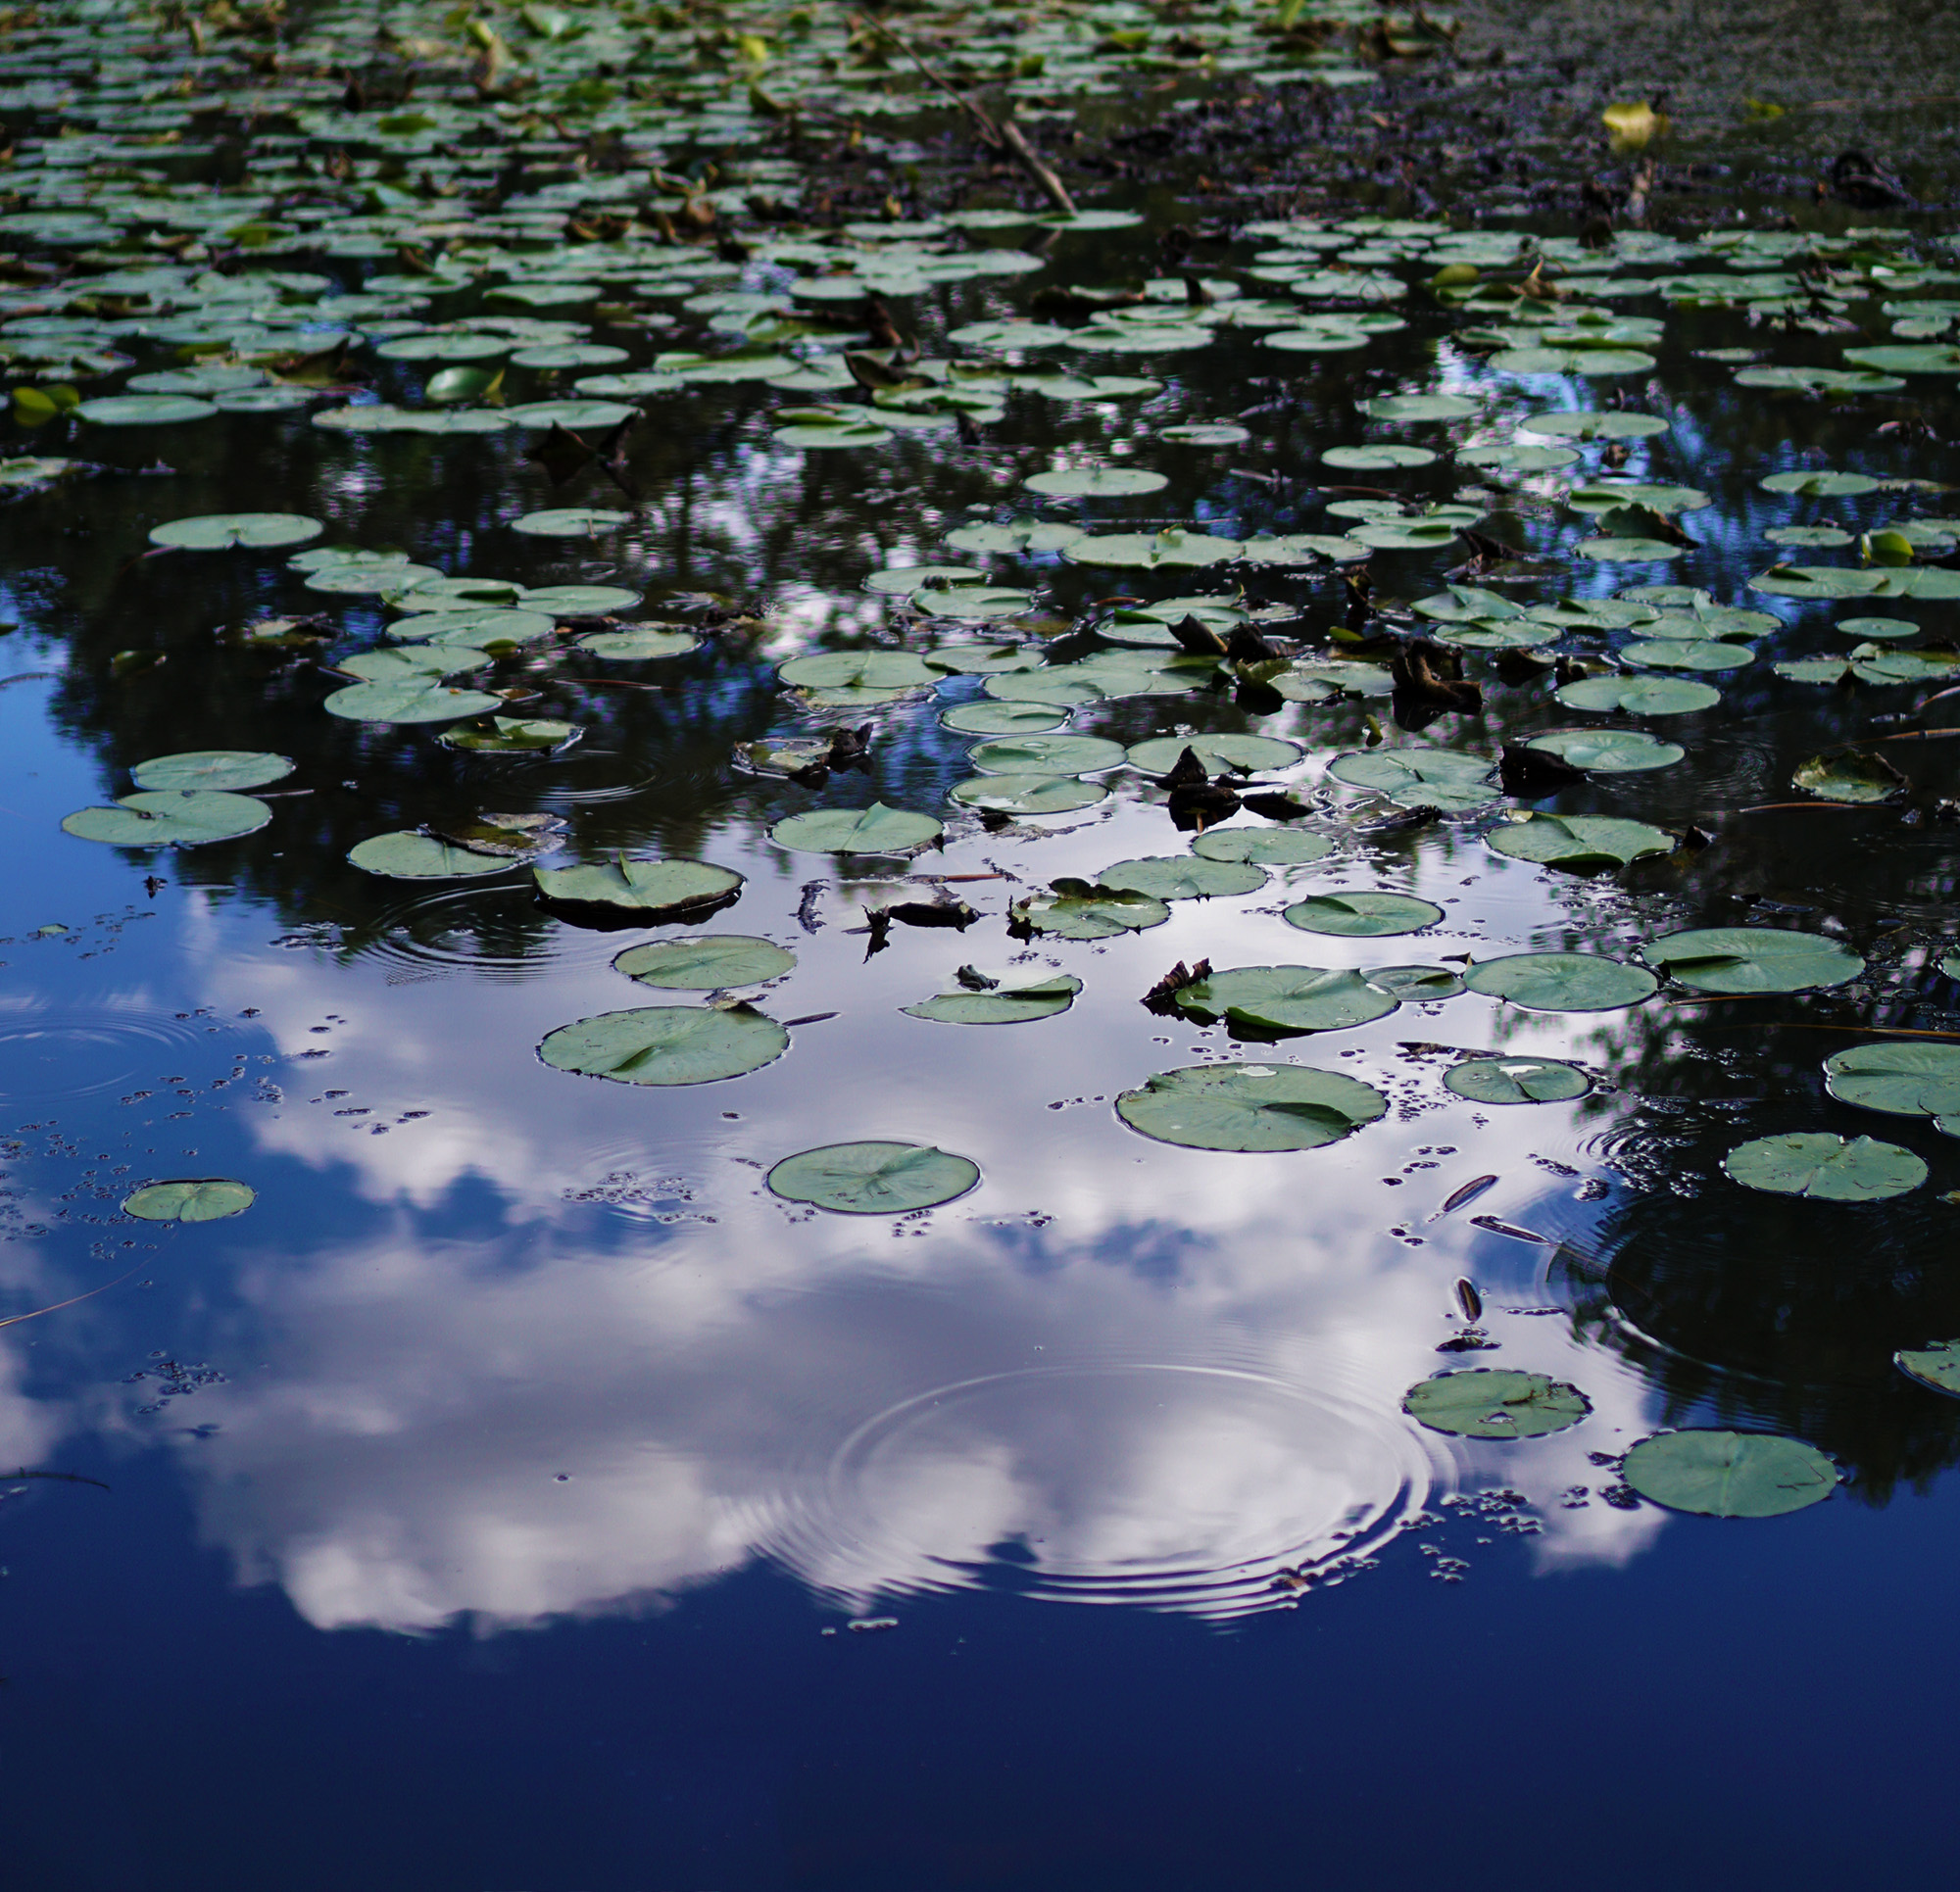 Cloud reflecting in the pond, North Park Village Nature Center / Darker than Green